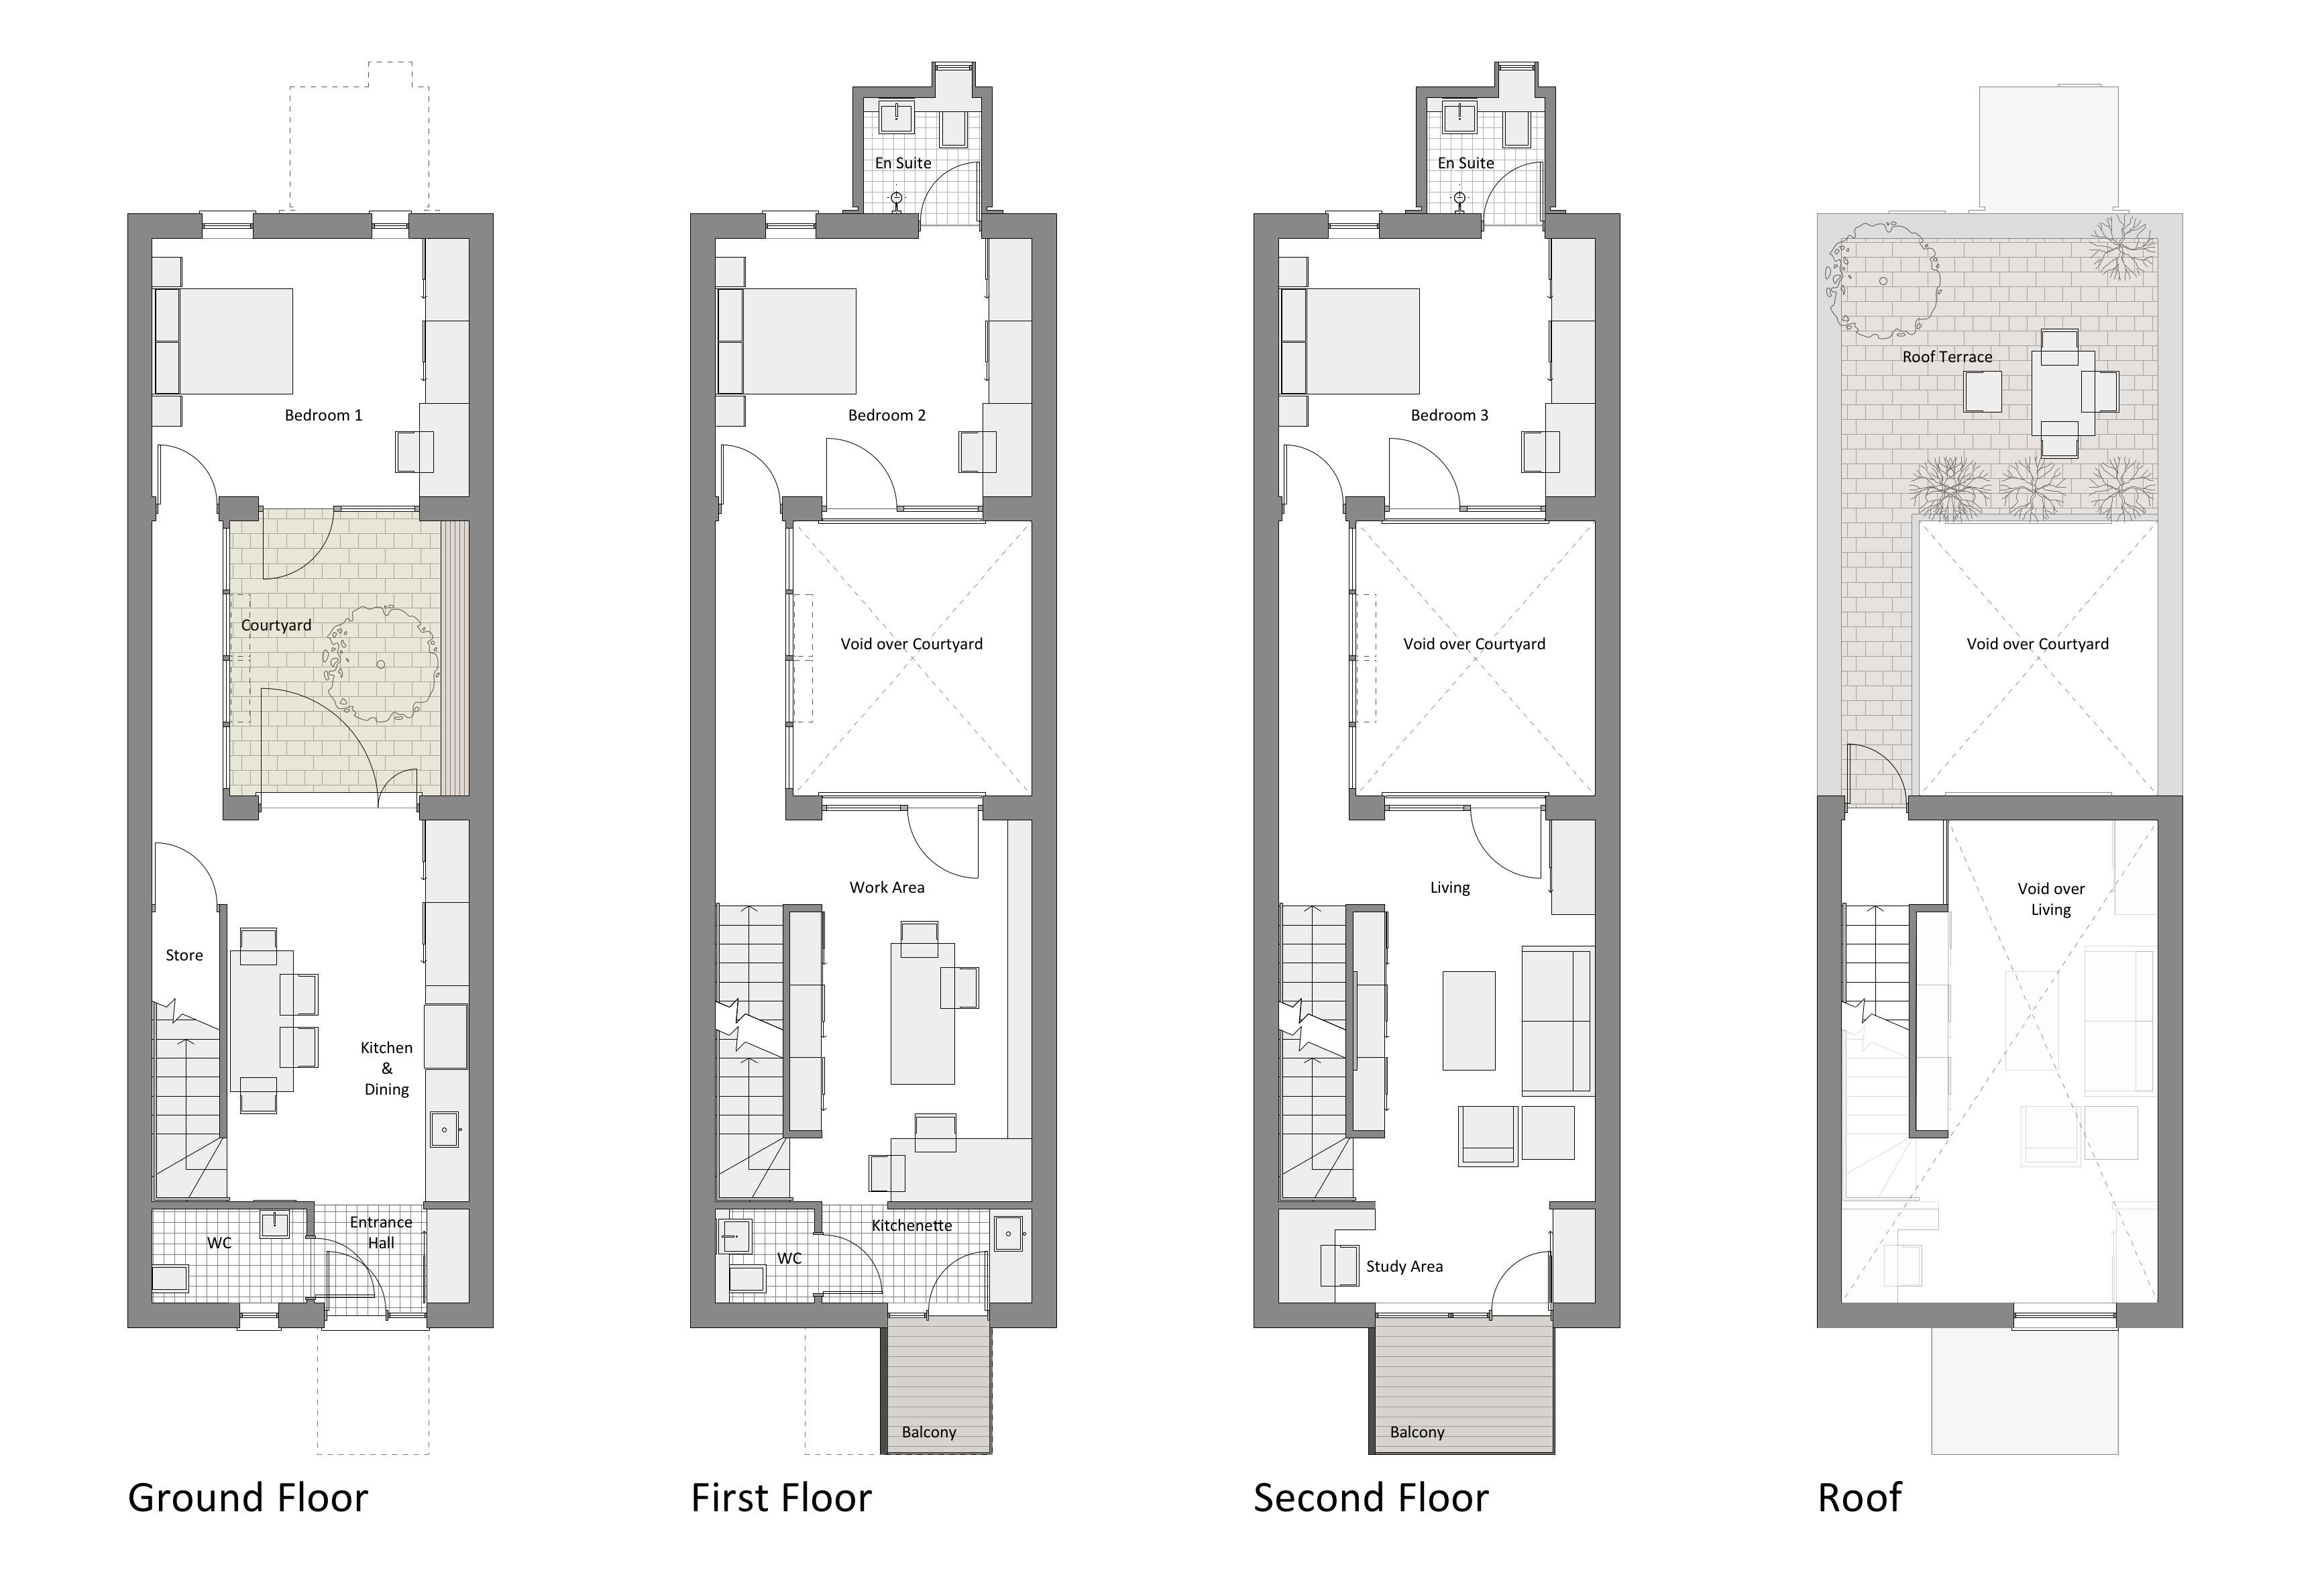 Courtyard/Row House | Marc Medland | Architect in 2020 ... on floor plans with doors, floor plans with walls, floor plans with stairs, floor plans with conservatories, floor plans with laundry rooms, floor plans with windows, floor plans with elevators, floor plans with stables, floor plans with hallways, floor plans with atriums, floor plans with columns, floor plans with basements, floor plans with patios, floor plans with landscaping, floor plans with gardens, floor plans with foyers, floor plans with staircases, floor plans with verandas, floor plans with breezeways, floor plans with halls,